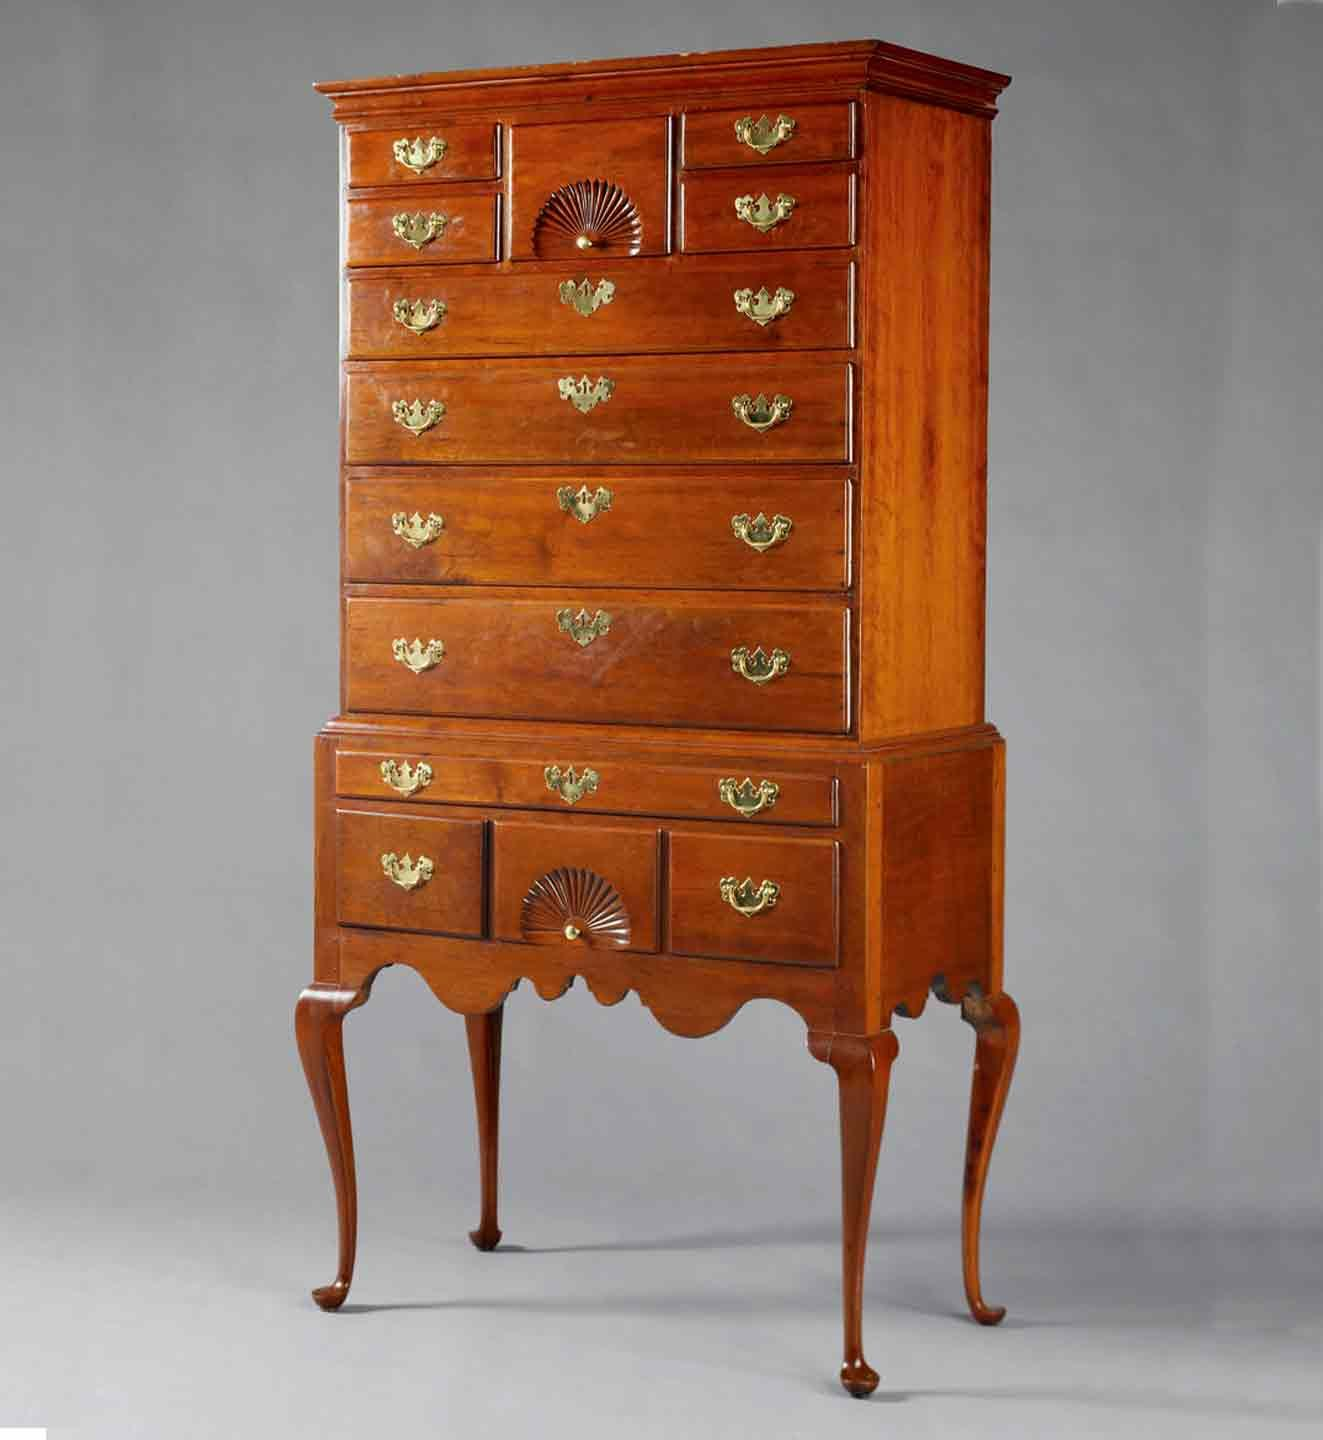 Queen Anne Cherry Highboy, Wethersfield, CT, Mid-18th Century - Queen Anne Cherry Highboy, Wethersfield, CT, Mid-18th Century